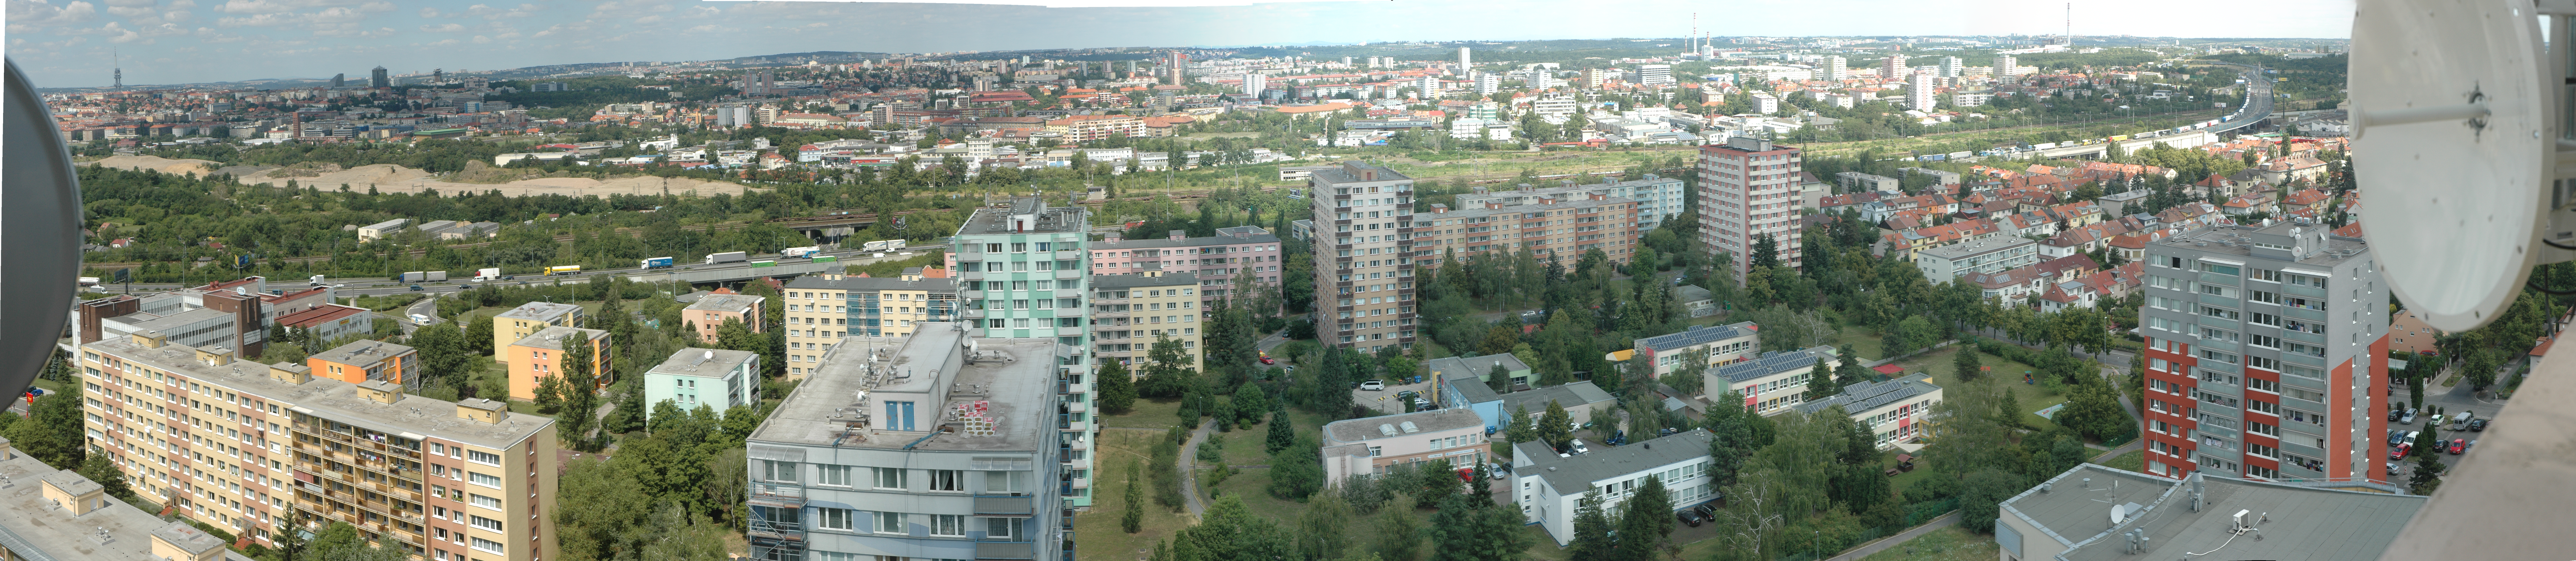 panorama:interni:20160720-arnika:arnika-pano2_blended_fused.png